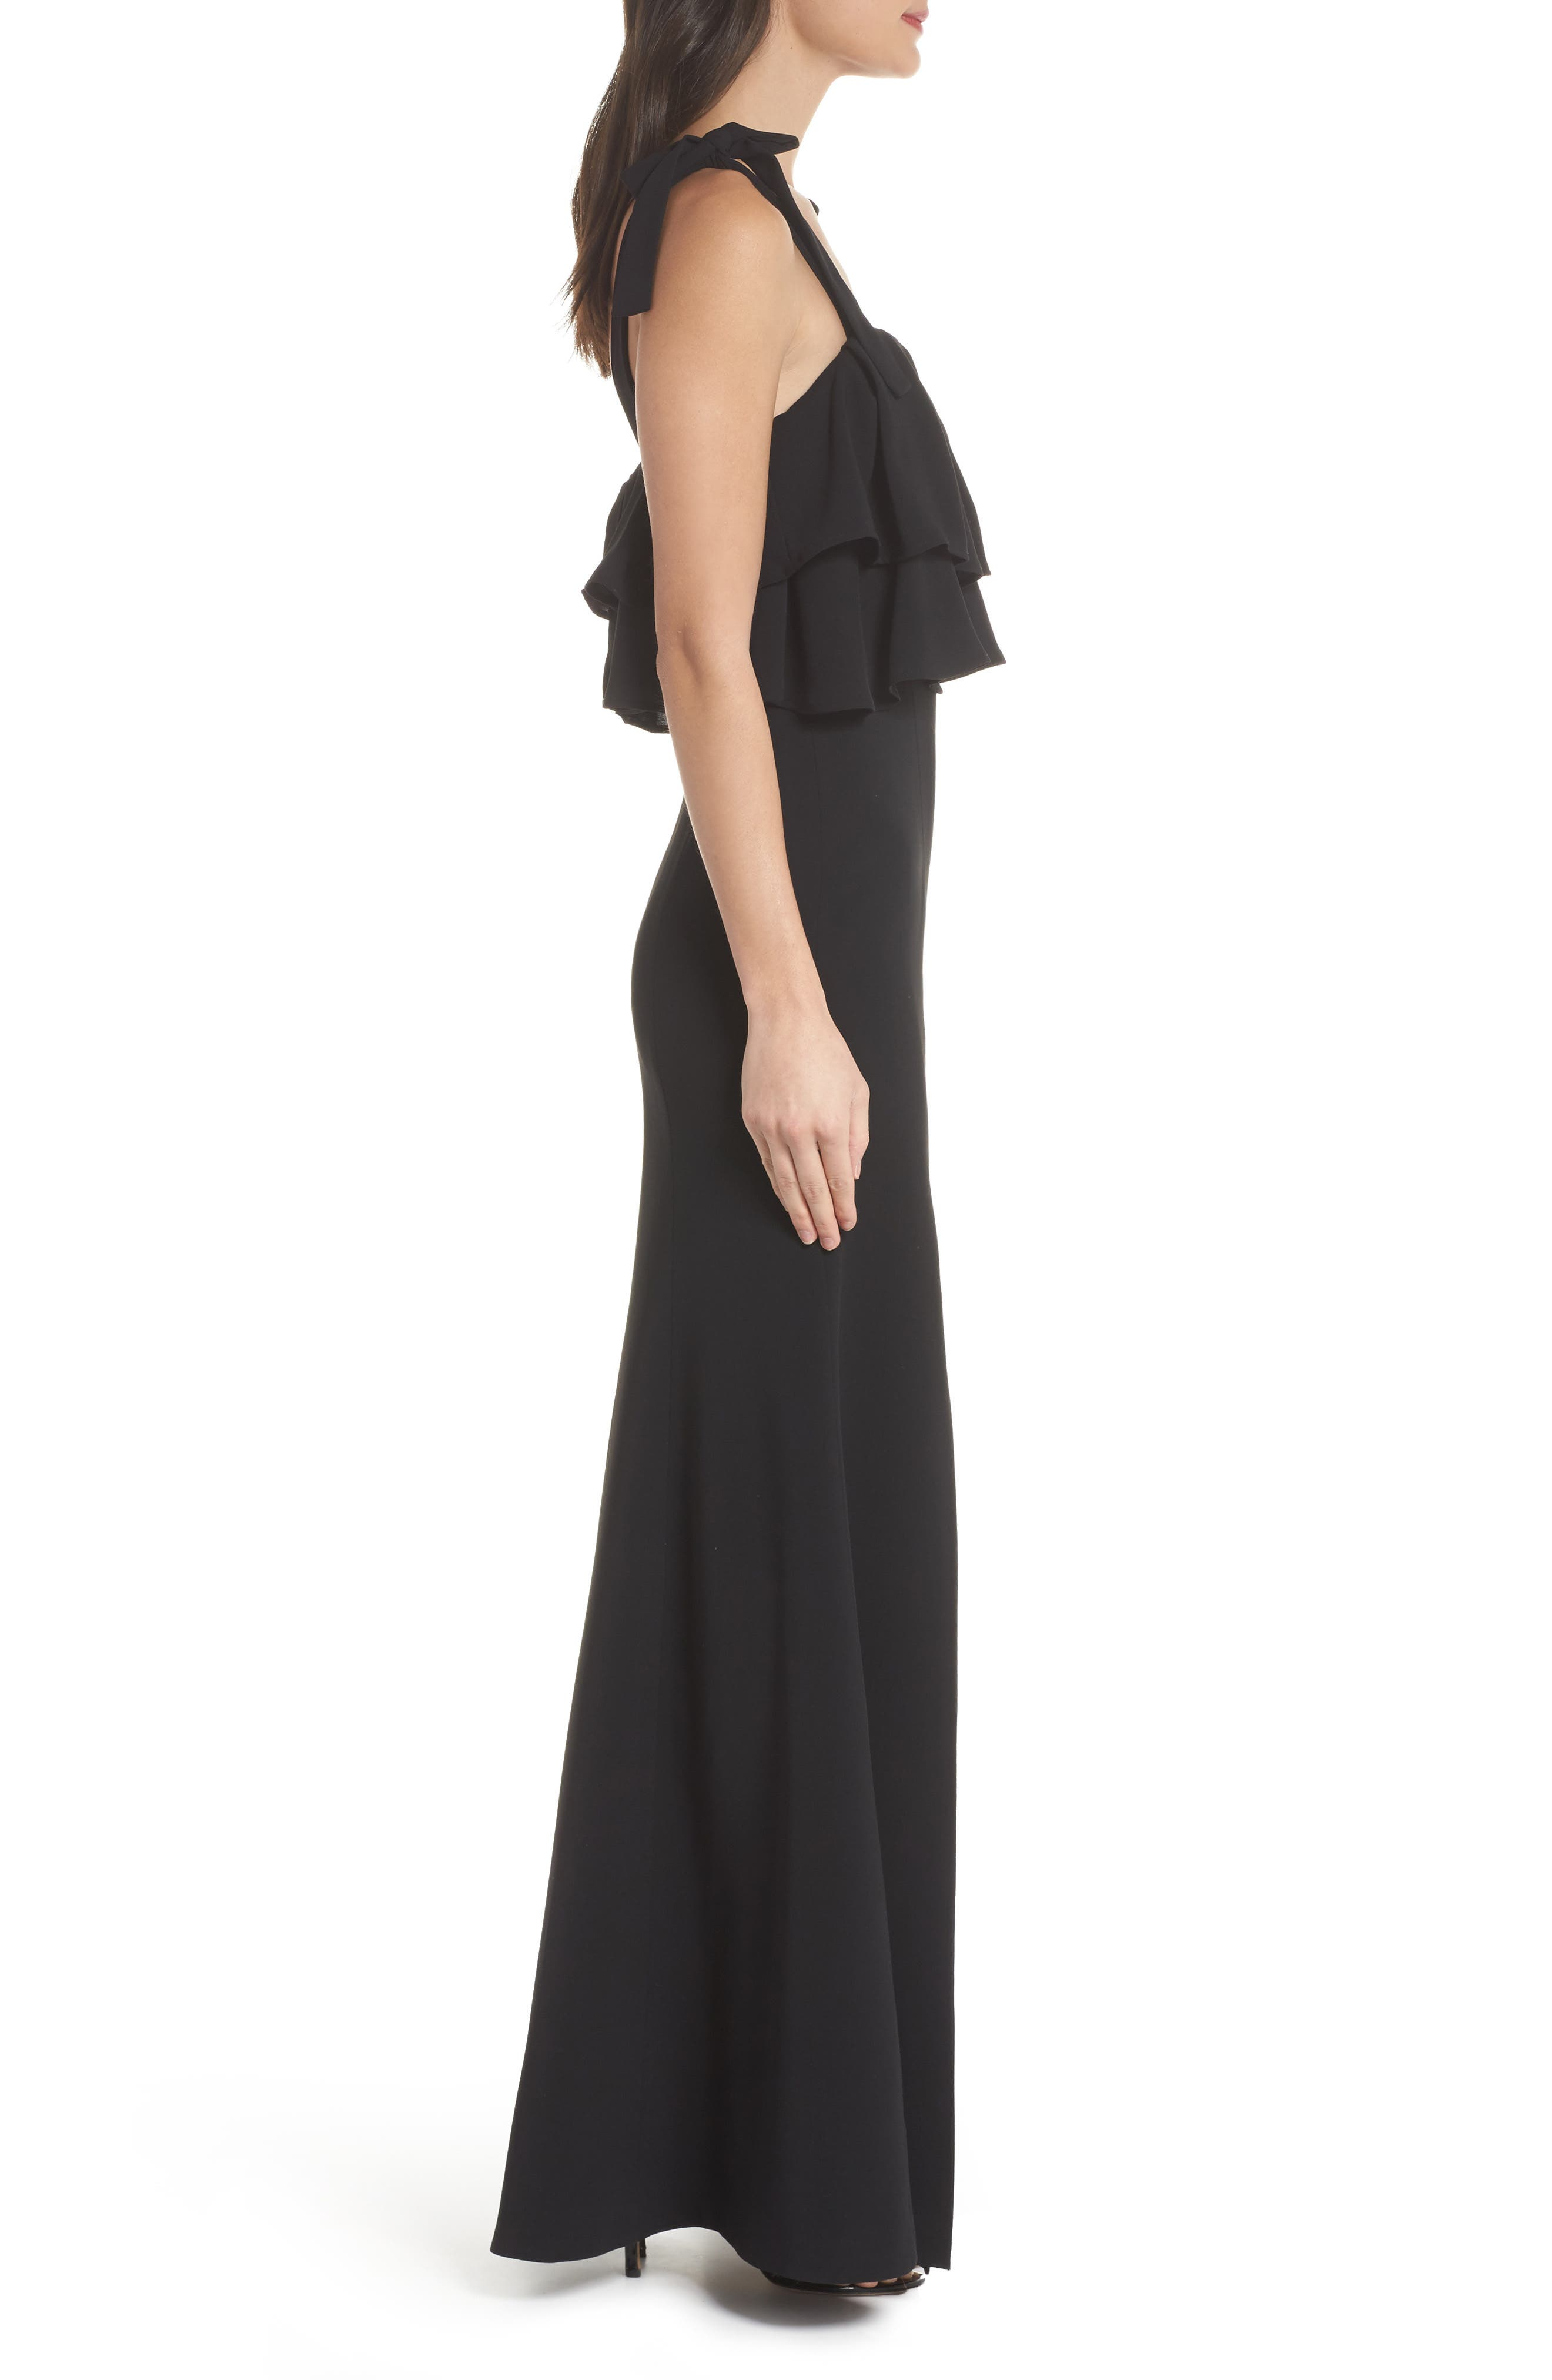 Be About You Ruffle Bodice Gown,                             Alternate thumbnail 3, color,                             Black